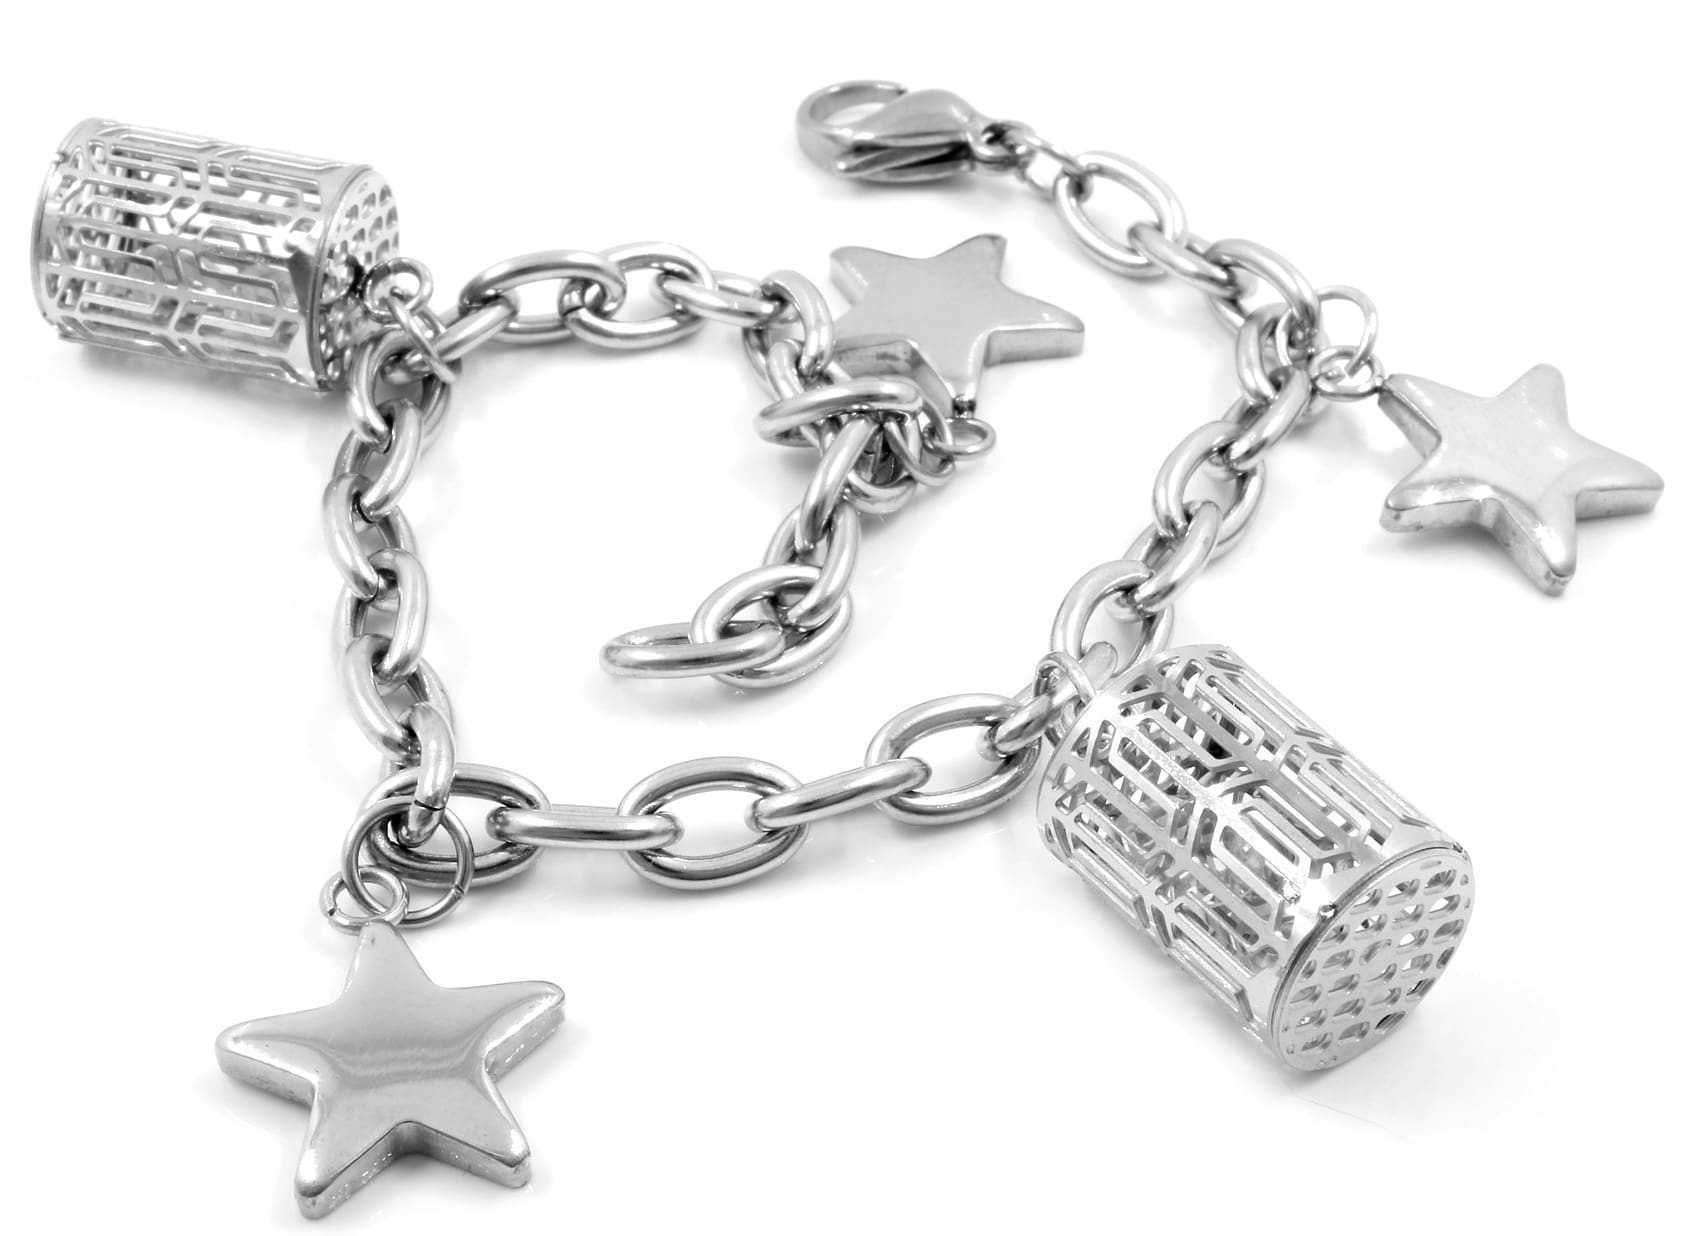 silver charm bracelet with silver five-pointed star charms and other charms